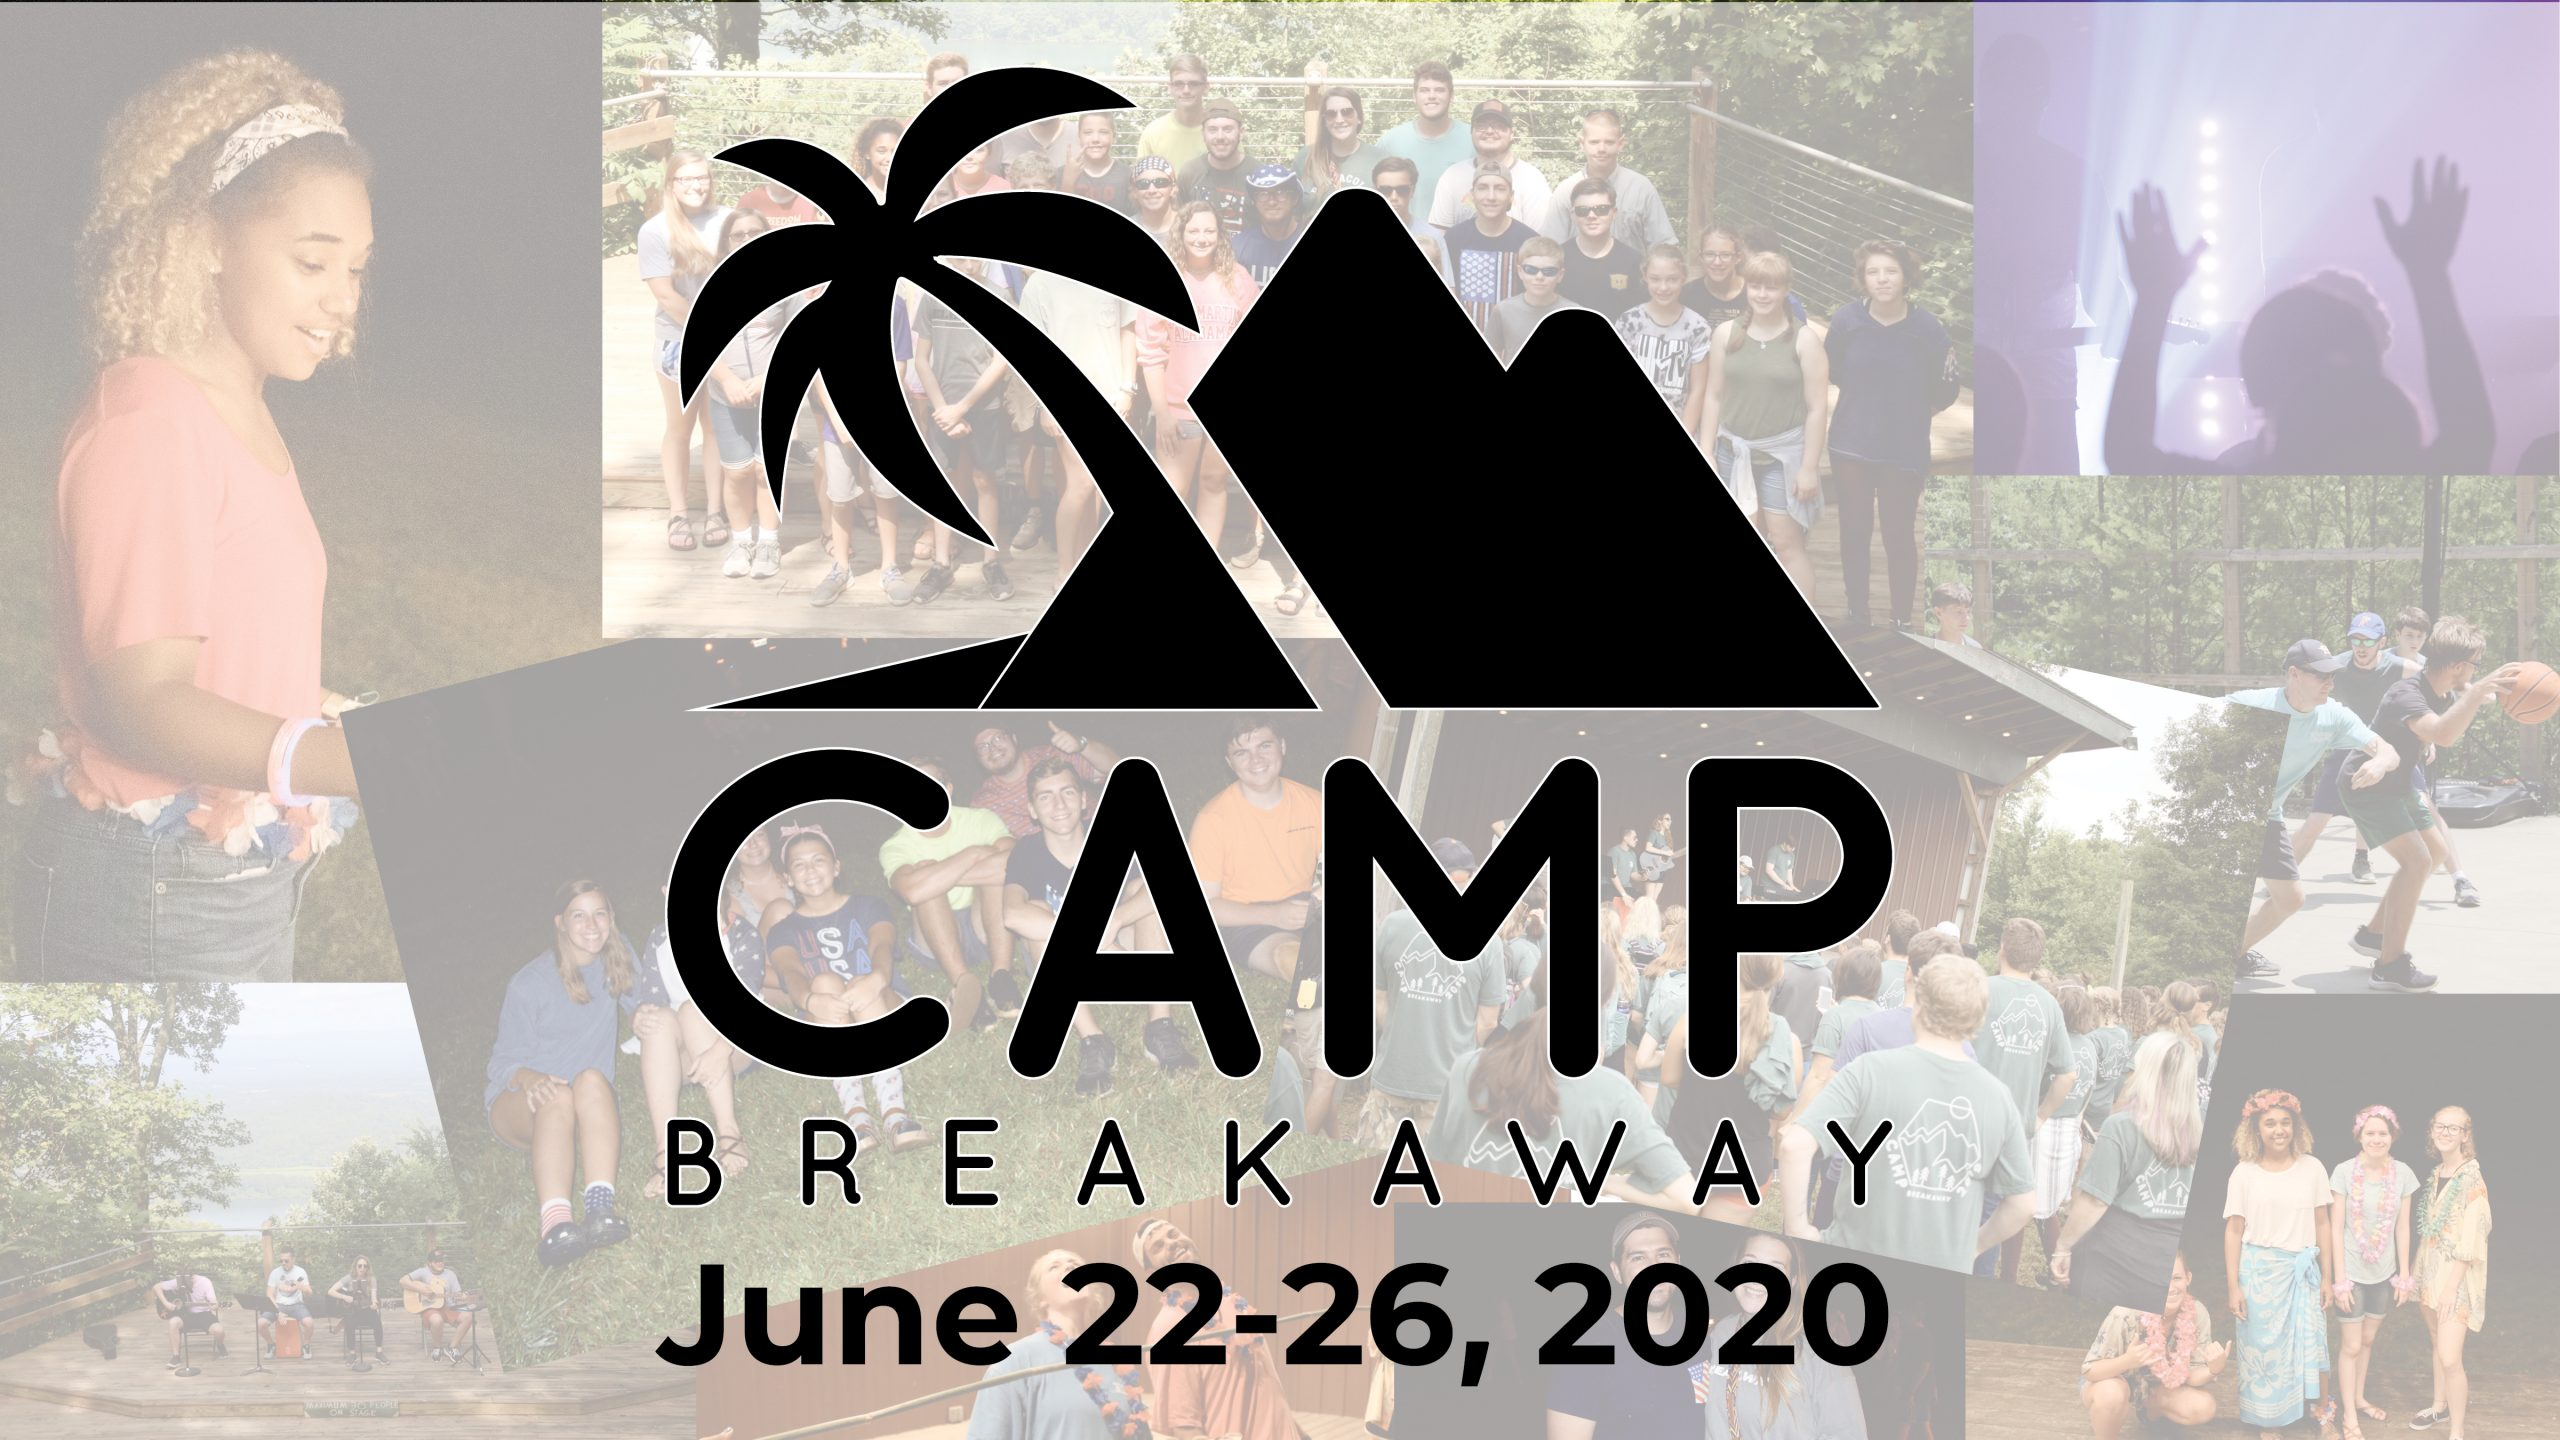 Breakaway Summer Camp 2020